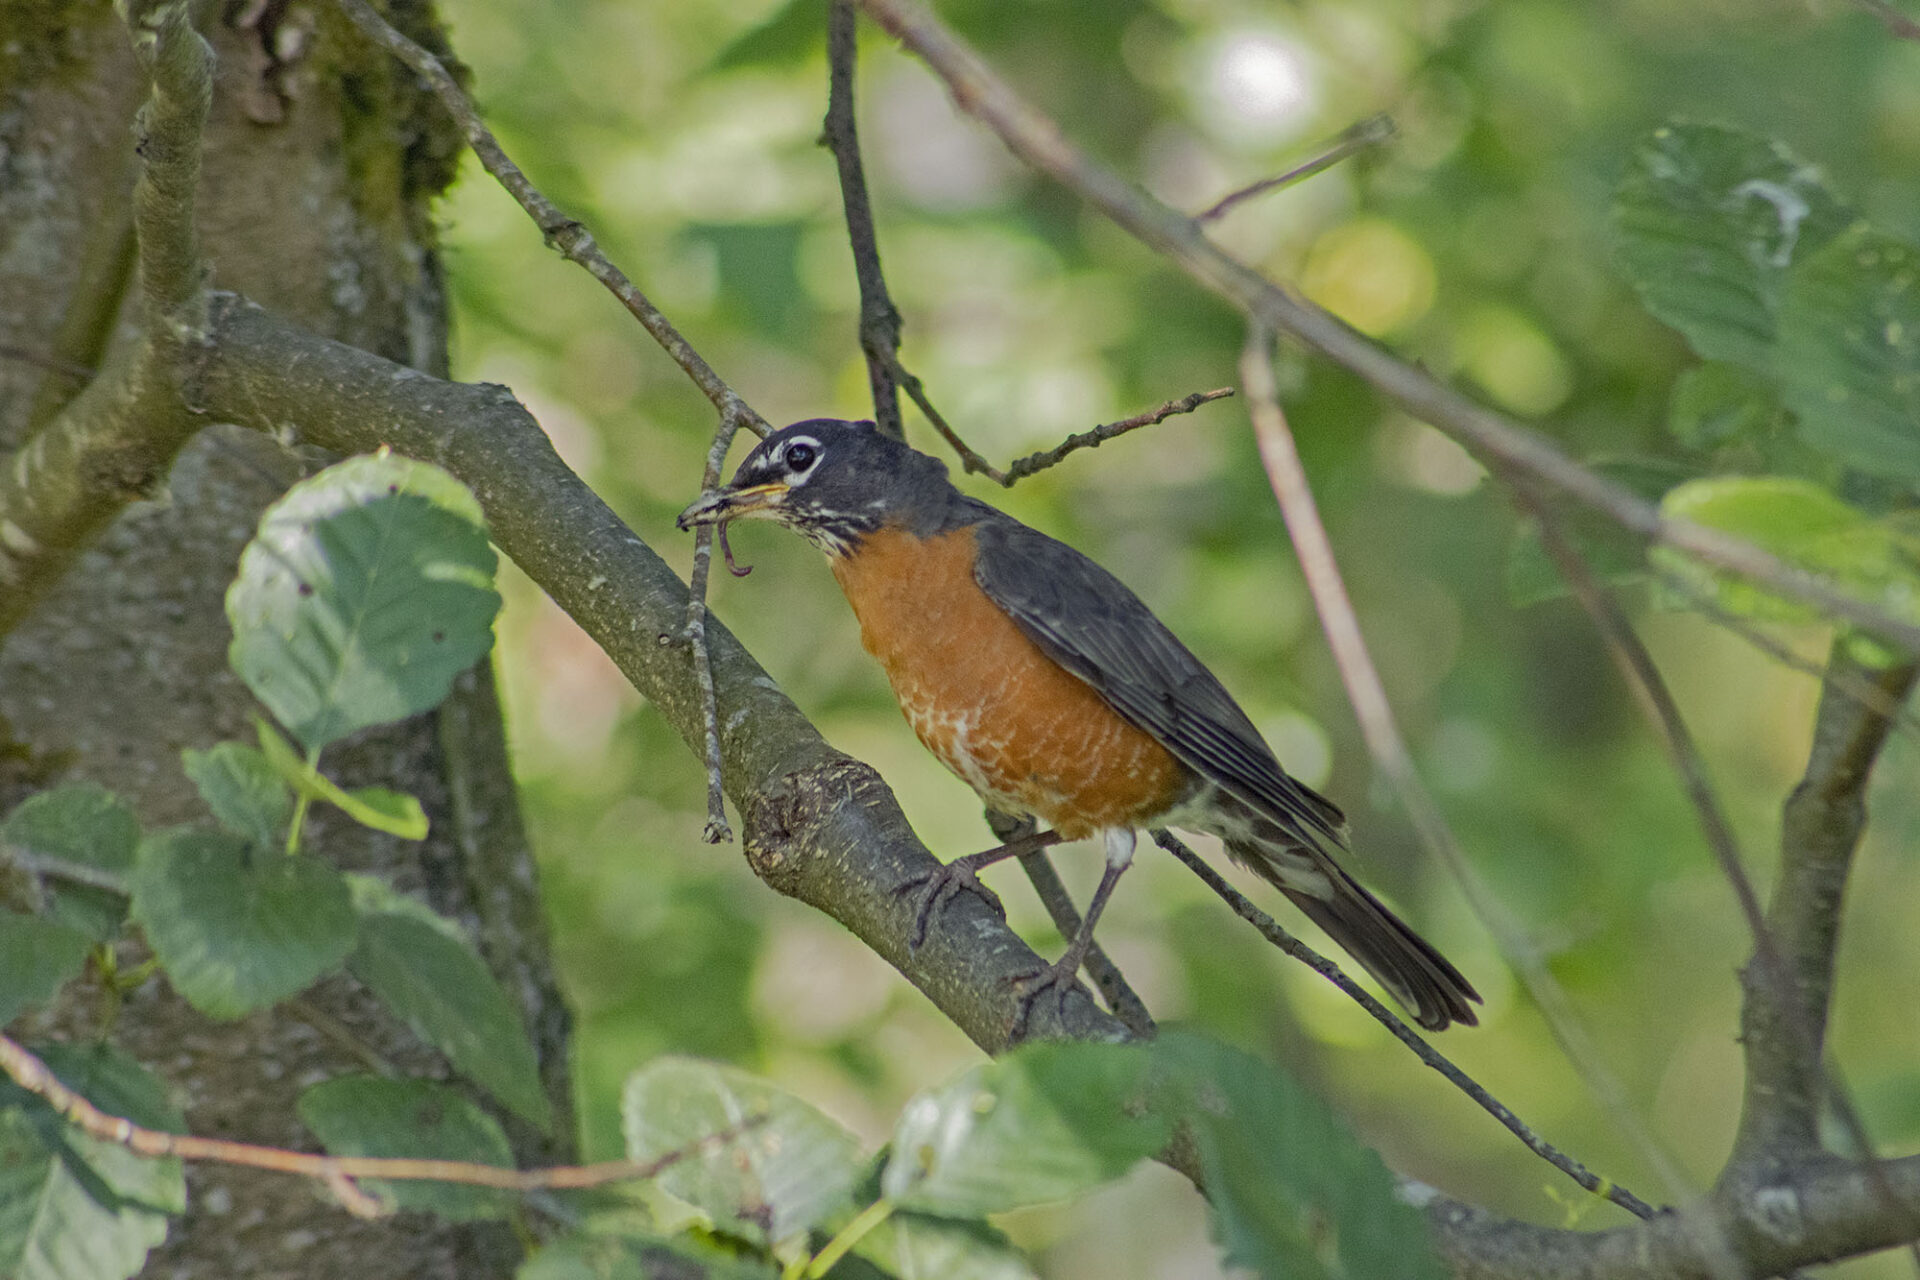 American Robin Eating a Worm, July 19, 2021